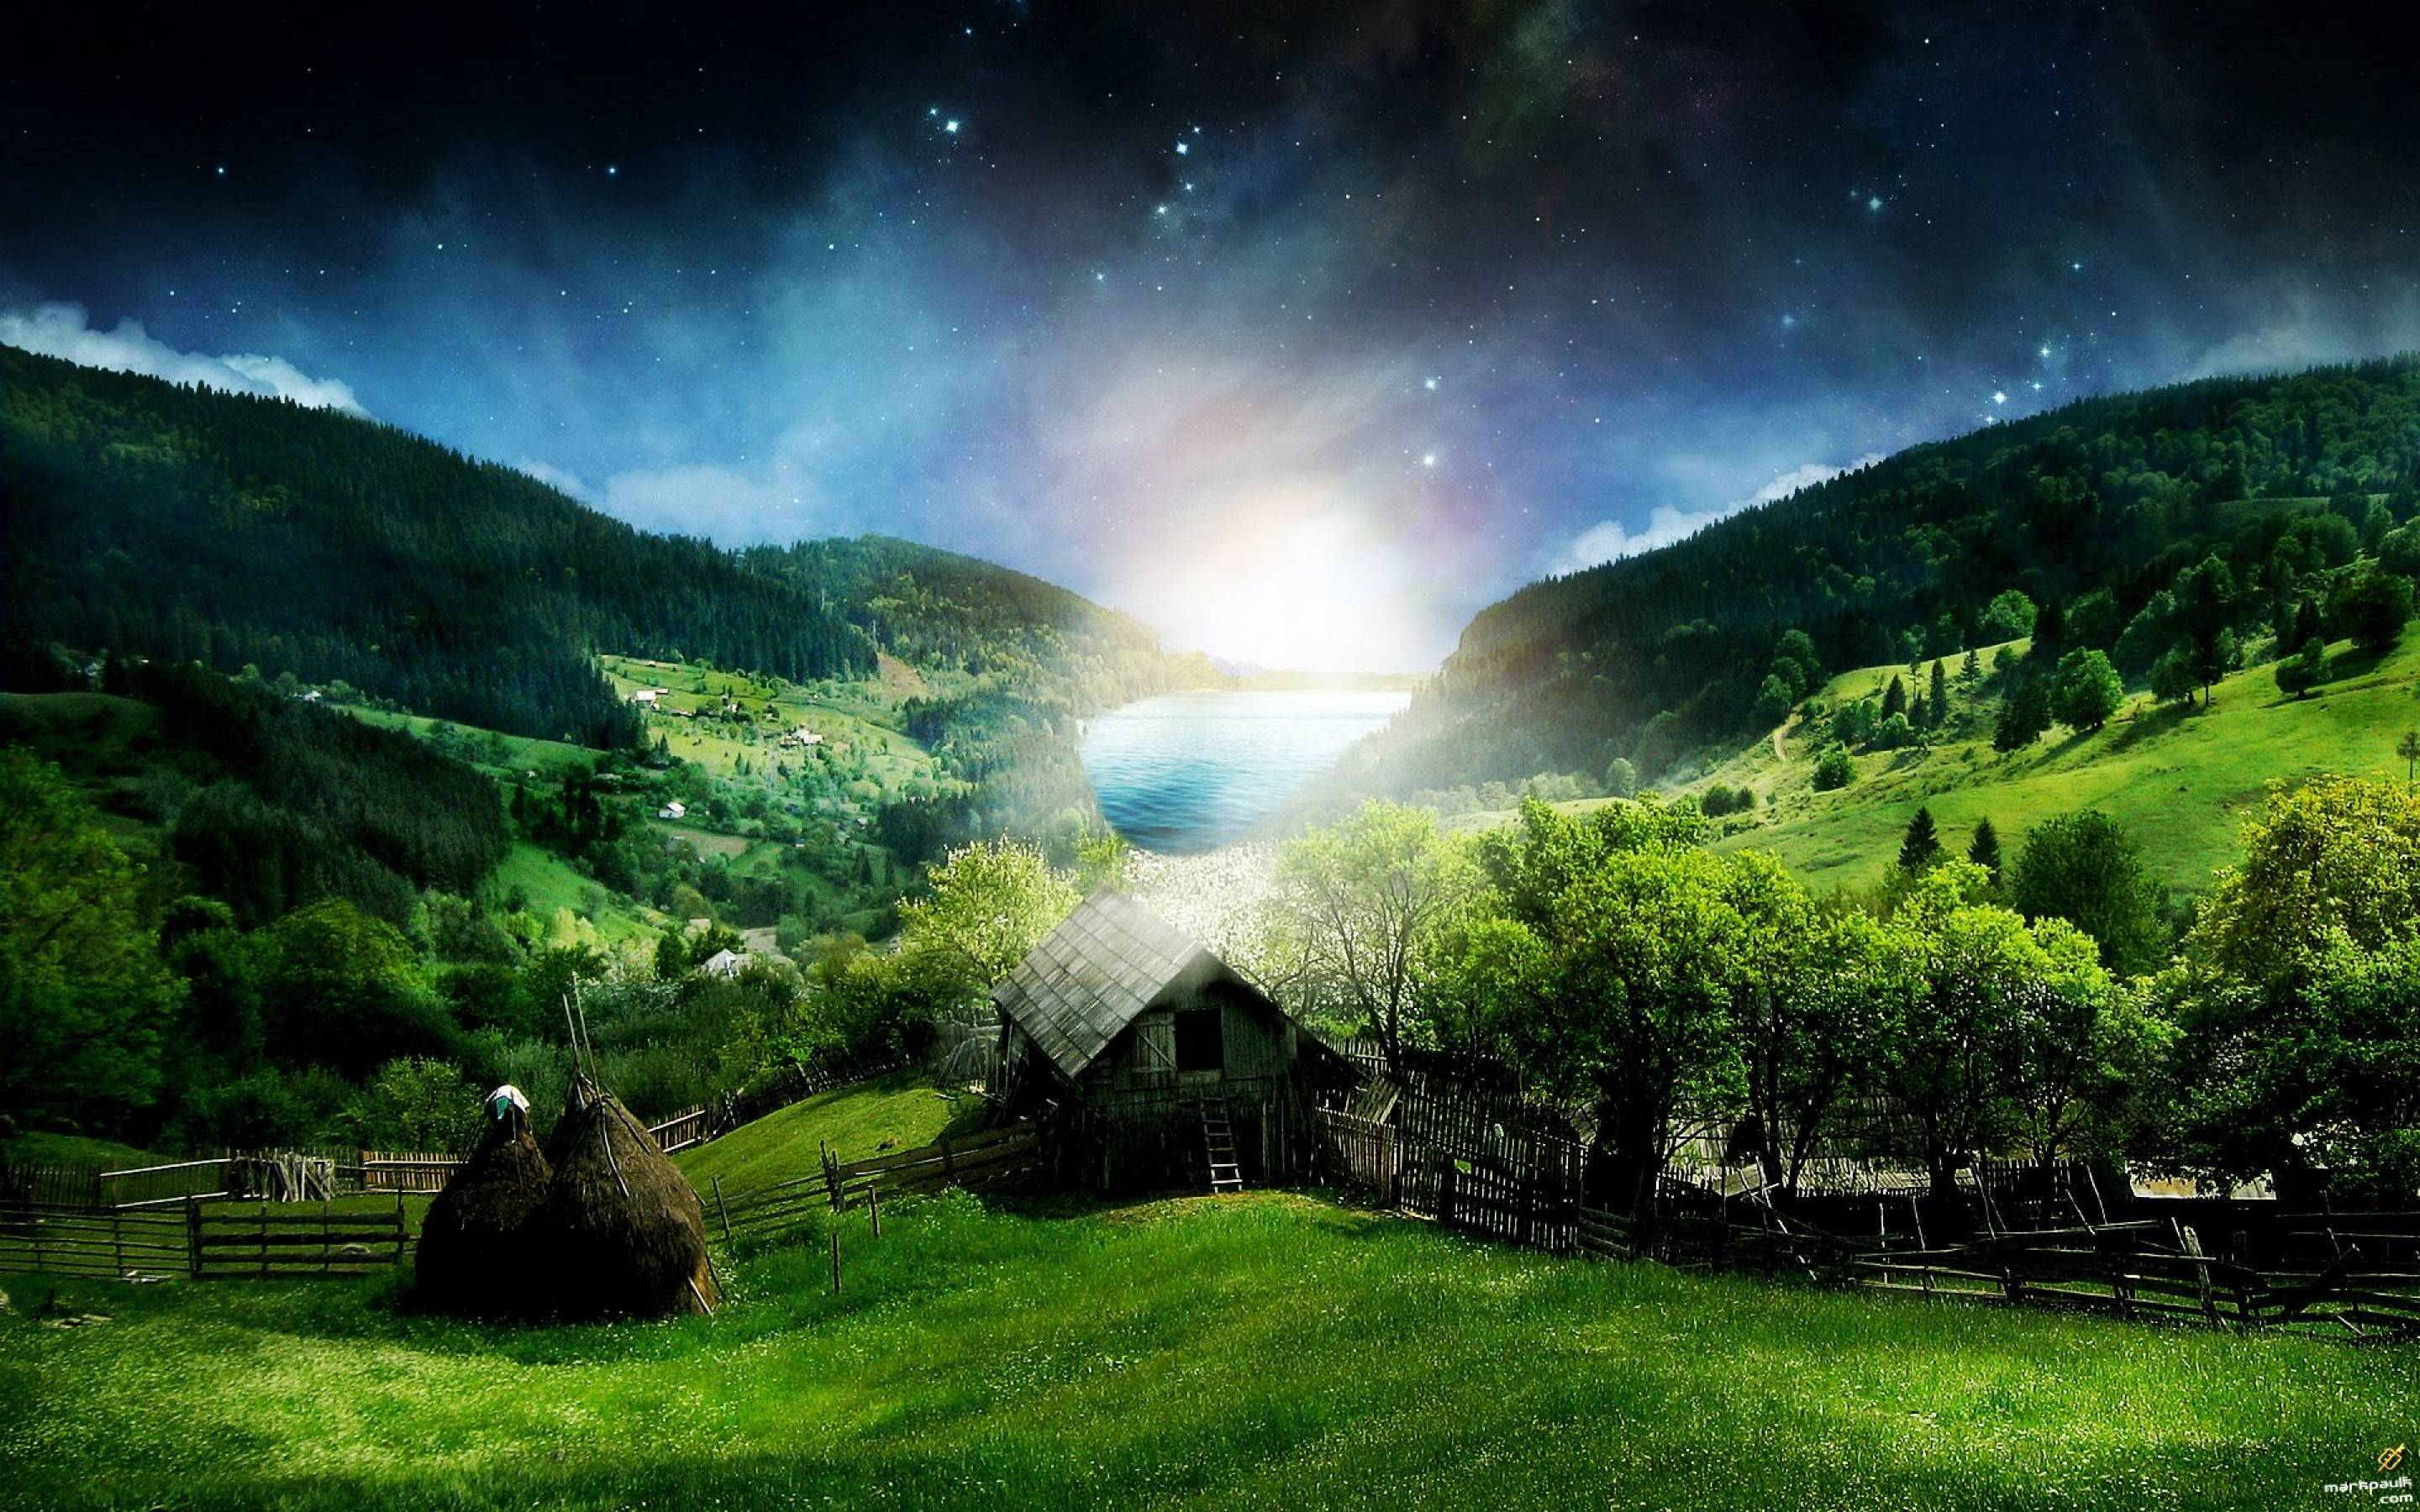 Beautiful wallpapers of nature - Wallpaper Nature Beauty Pictures 5 Hd Wallpaperscom